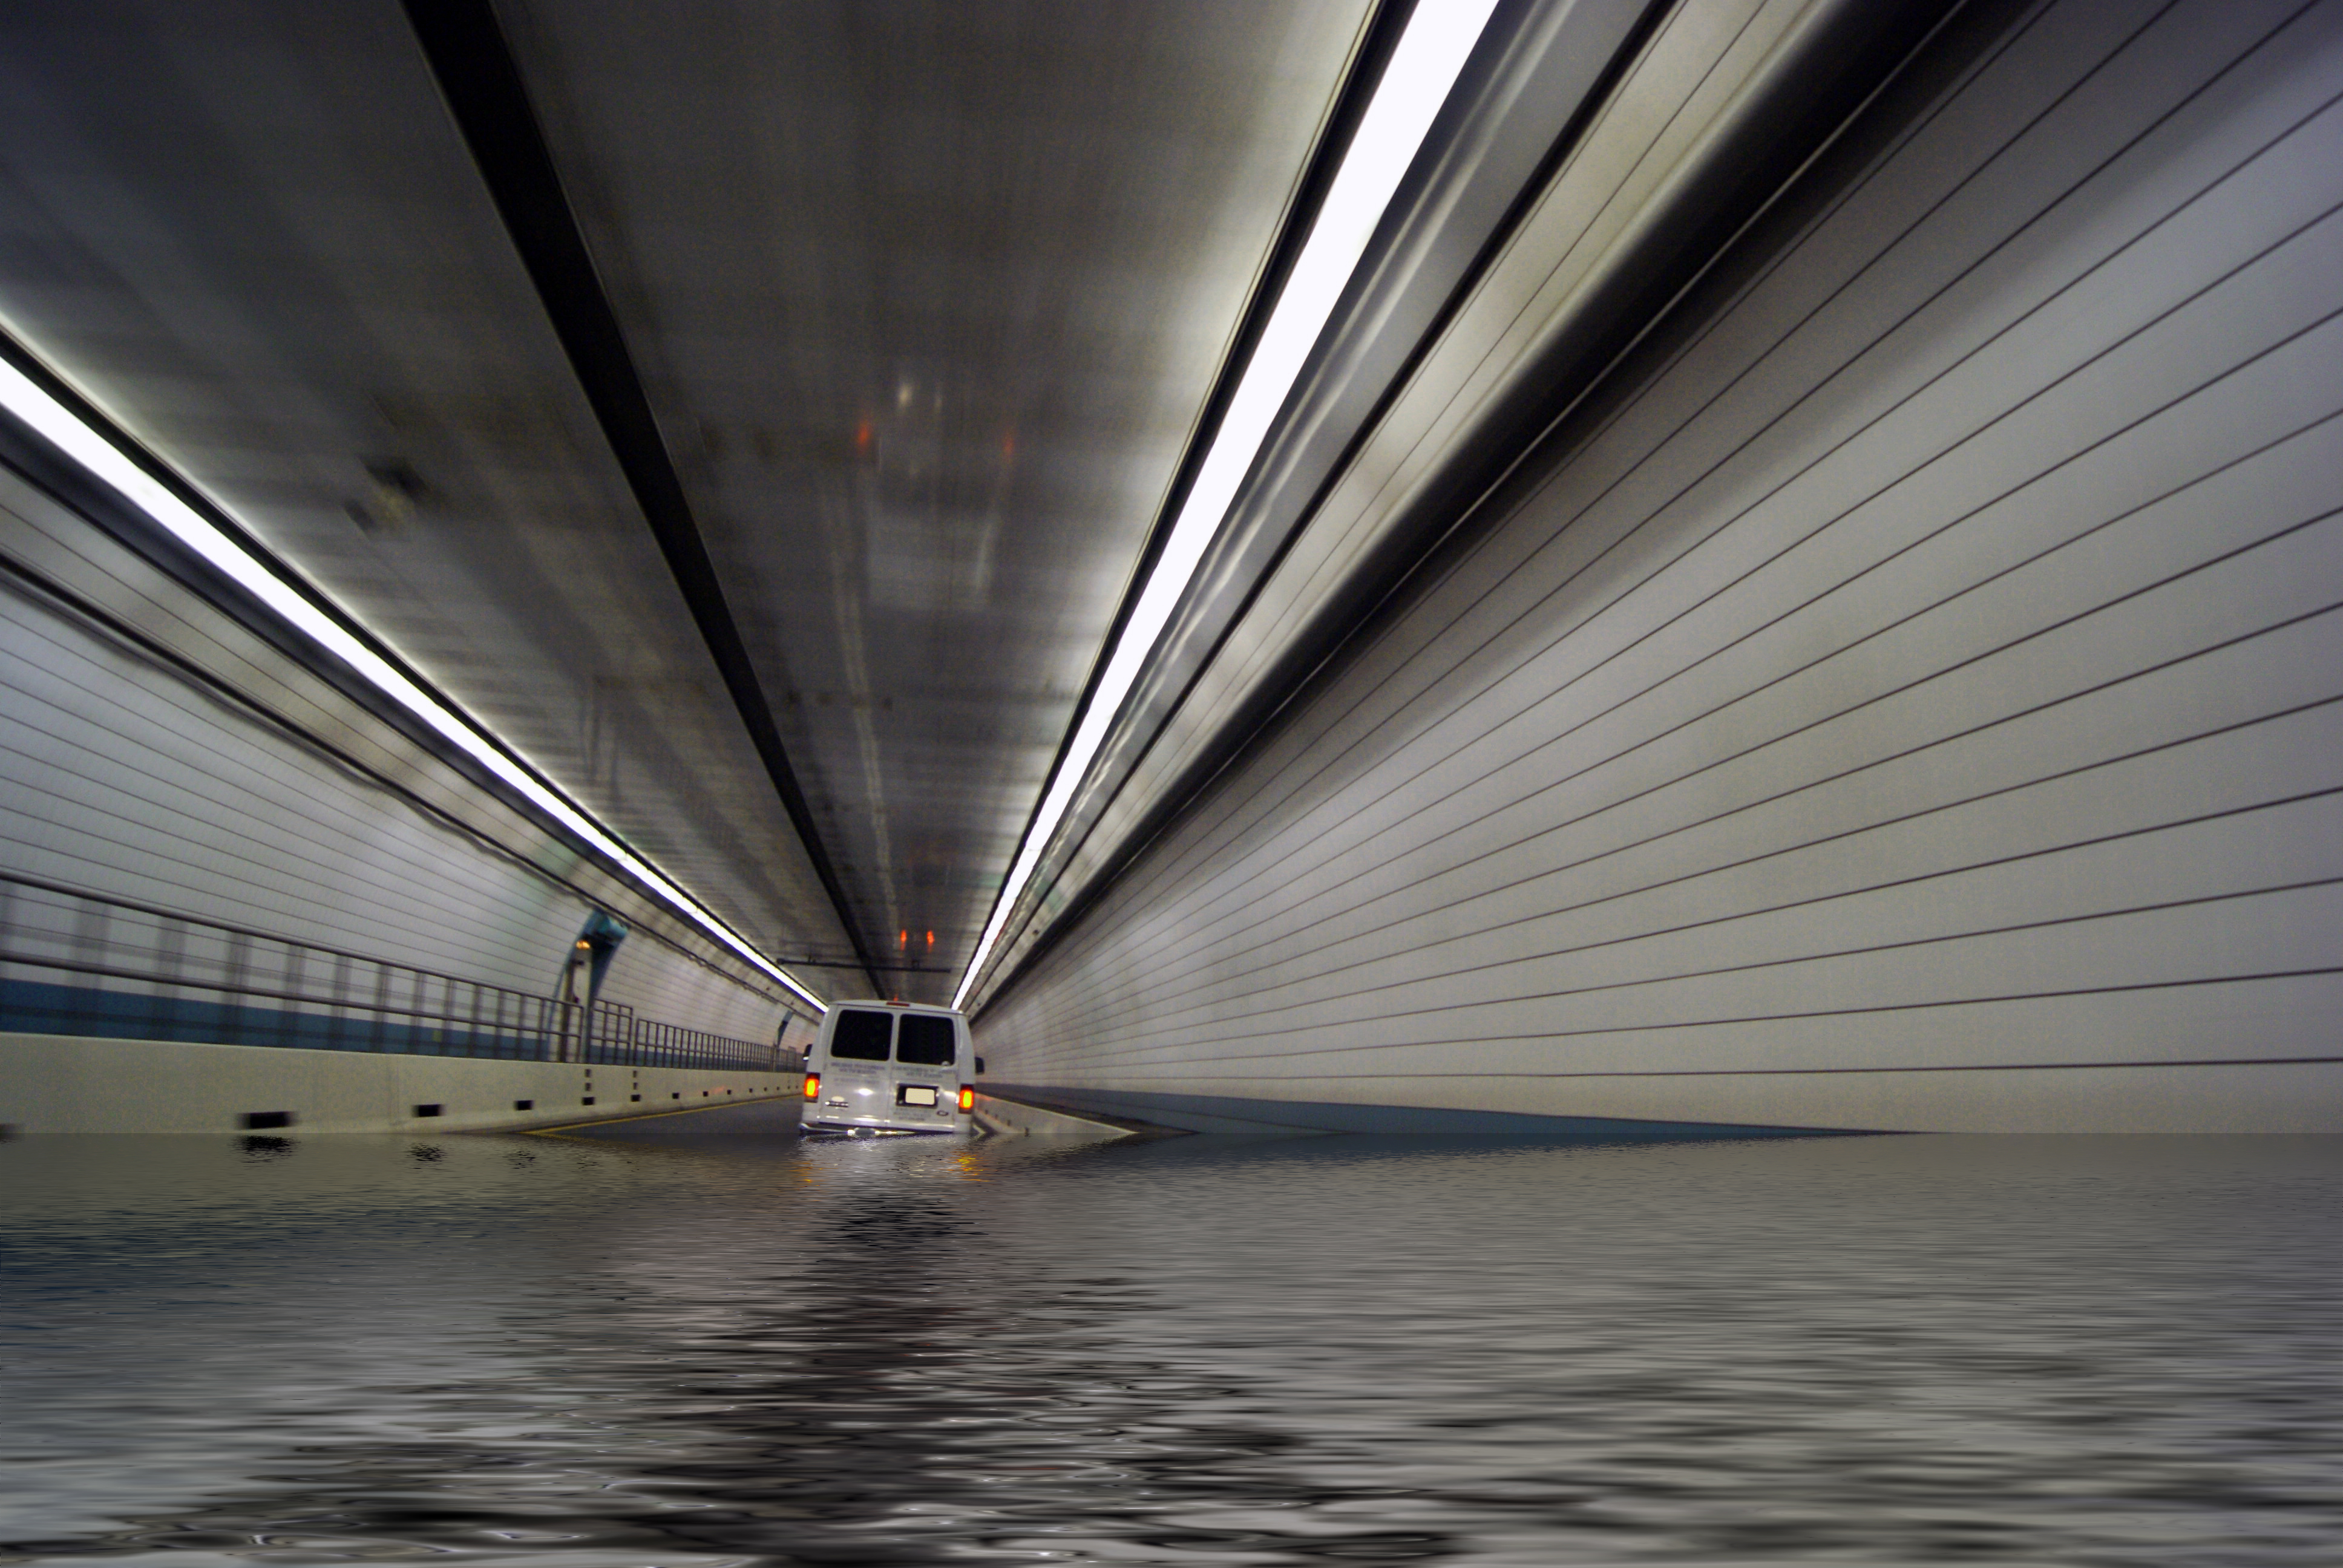 Flooded Tunnel, Above, Spain, Reflection, Rescue, HQ Photo